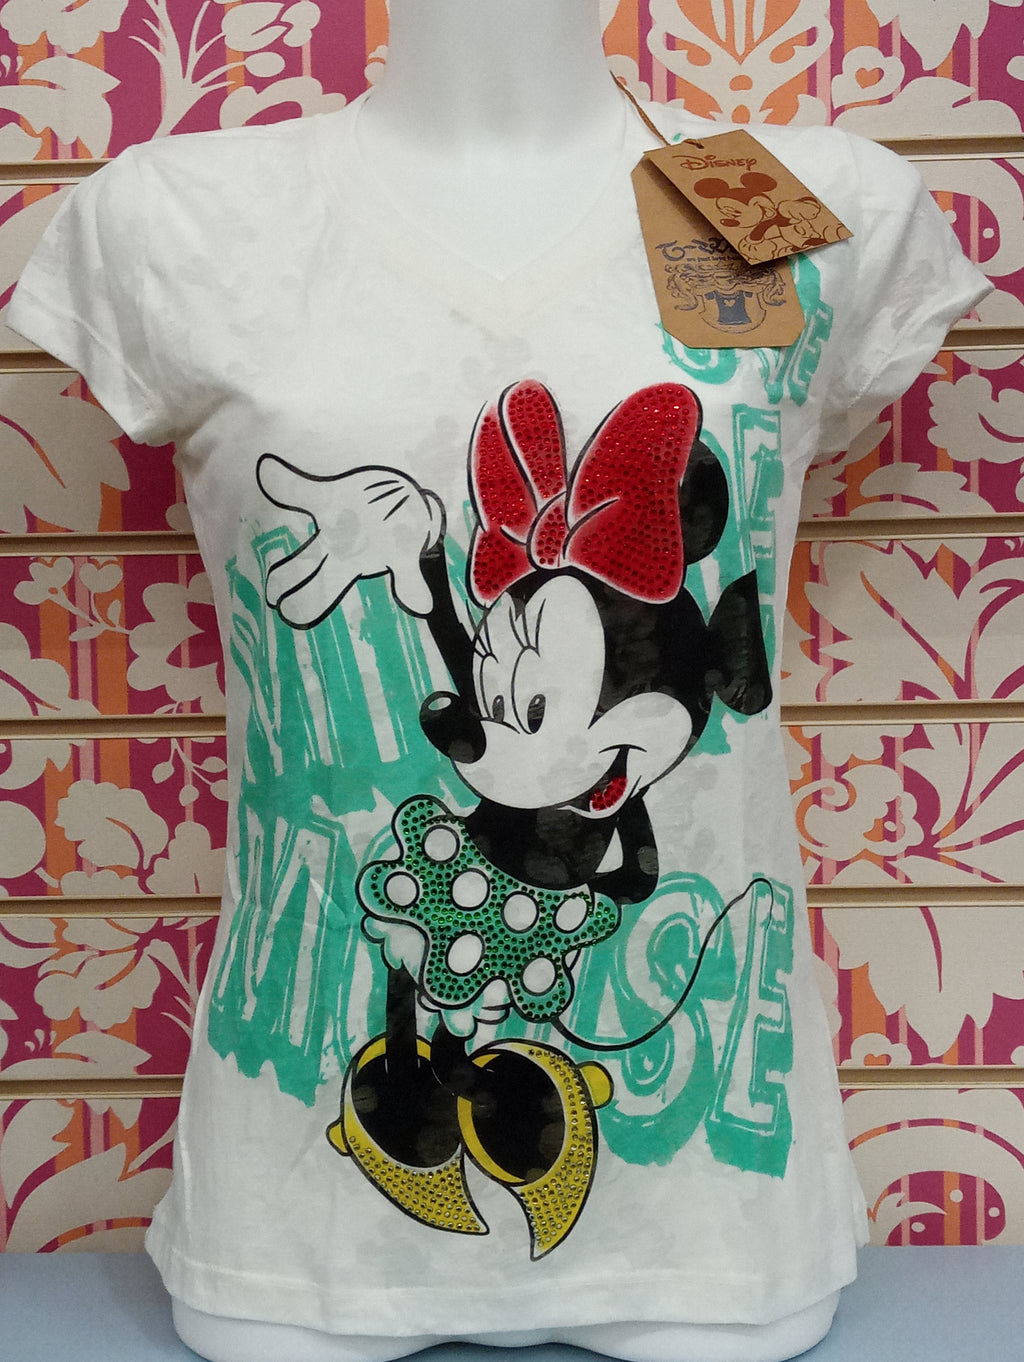 YD033MSW-6001 MINNI LOVE - DISNEY T-SHIRT DONNA - STREET STYLE PRINT stampa personalizzata